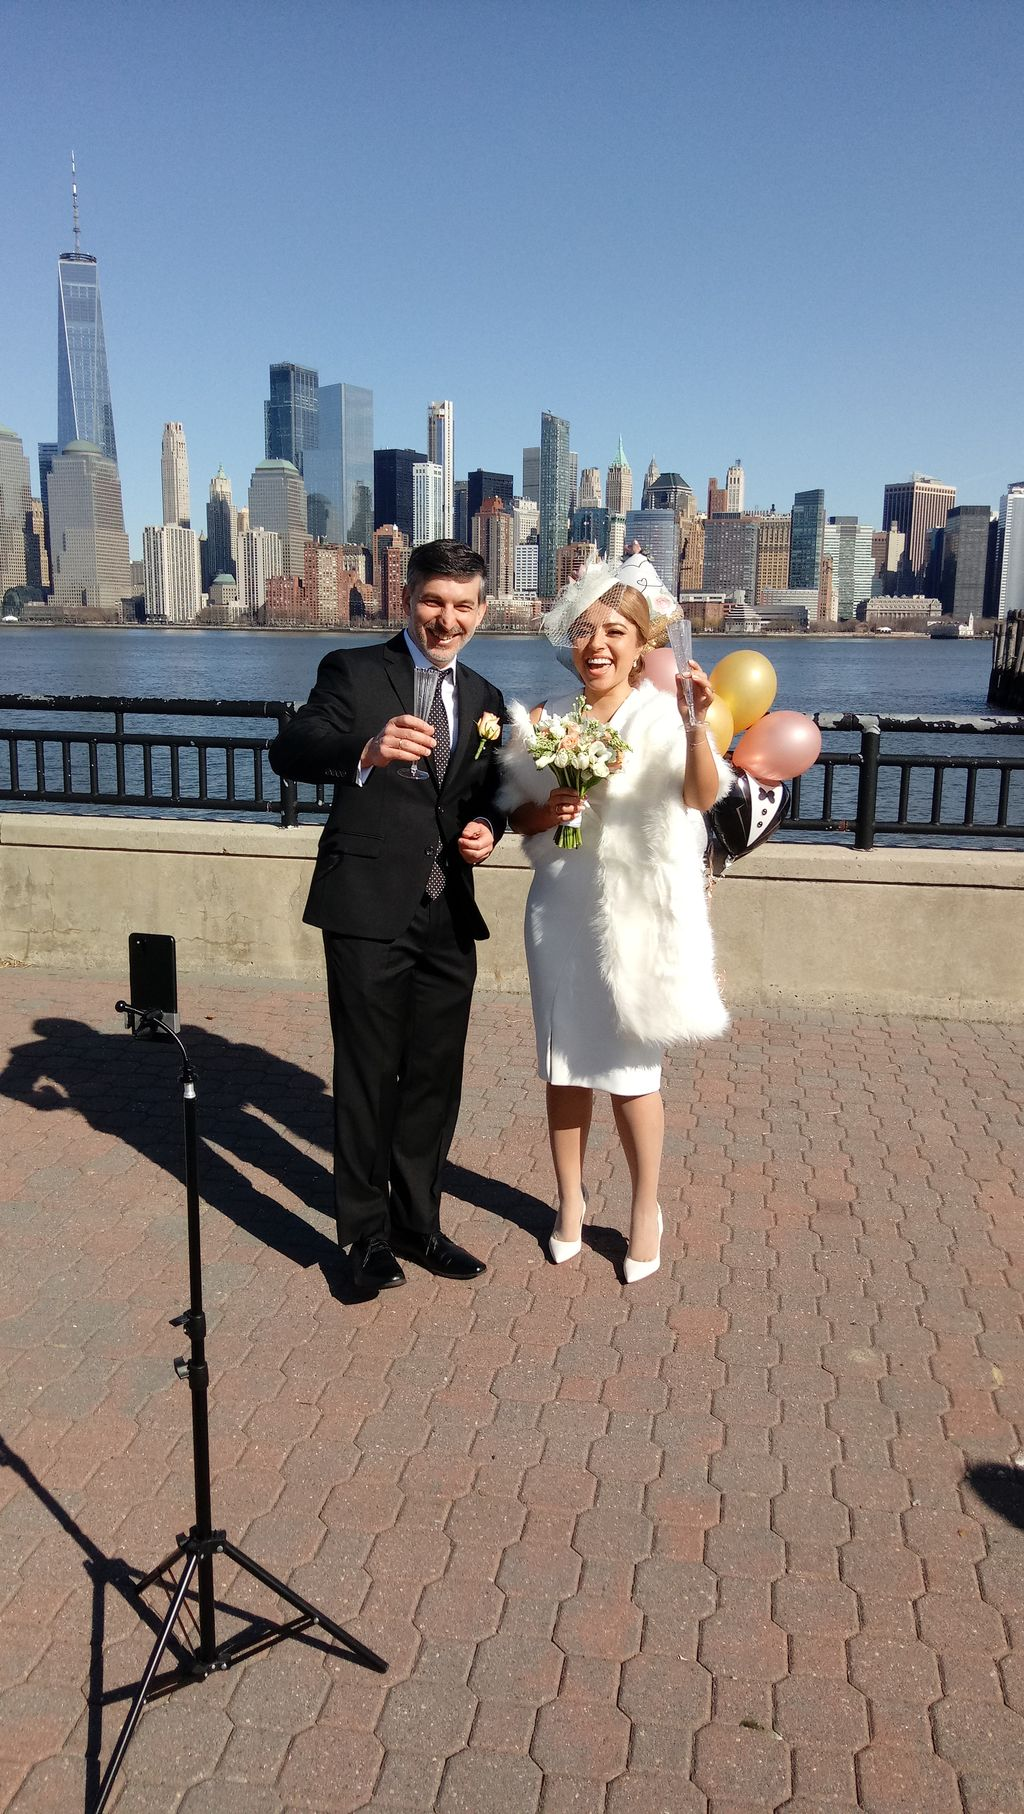 Wedding Officiant - Jersey City 2021